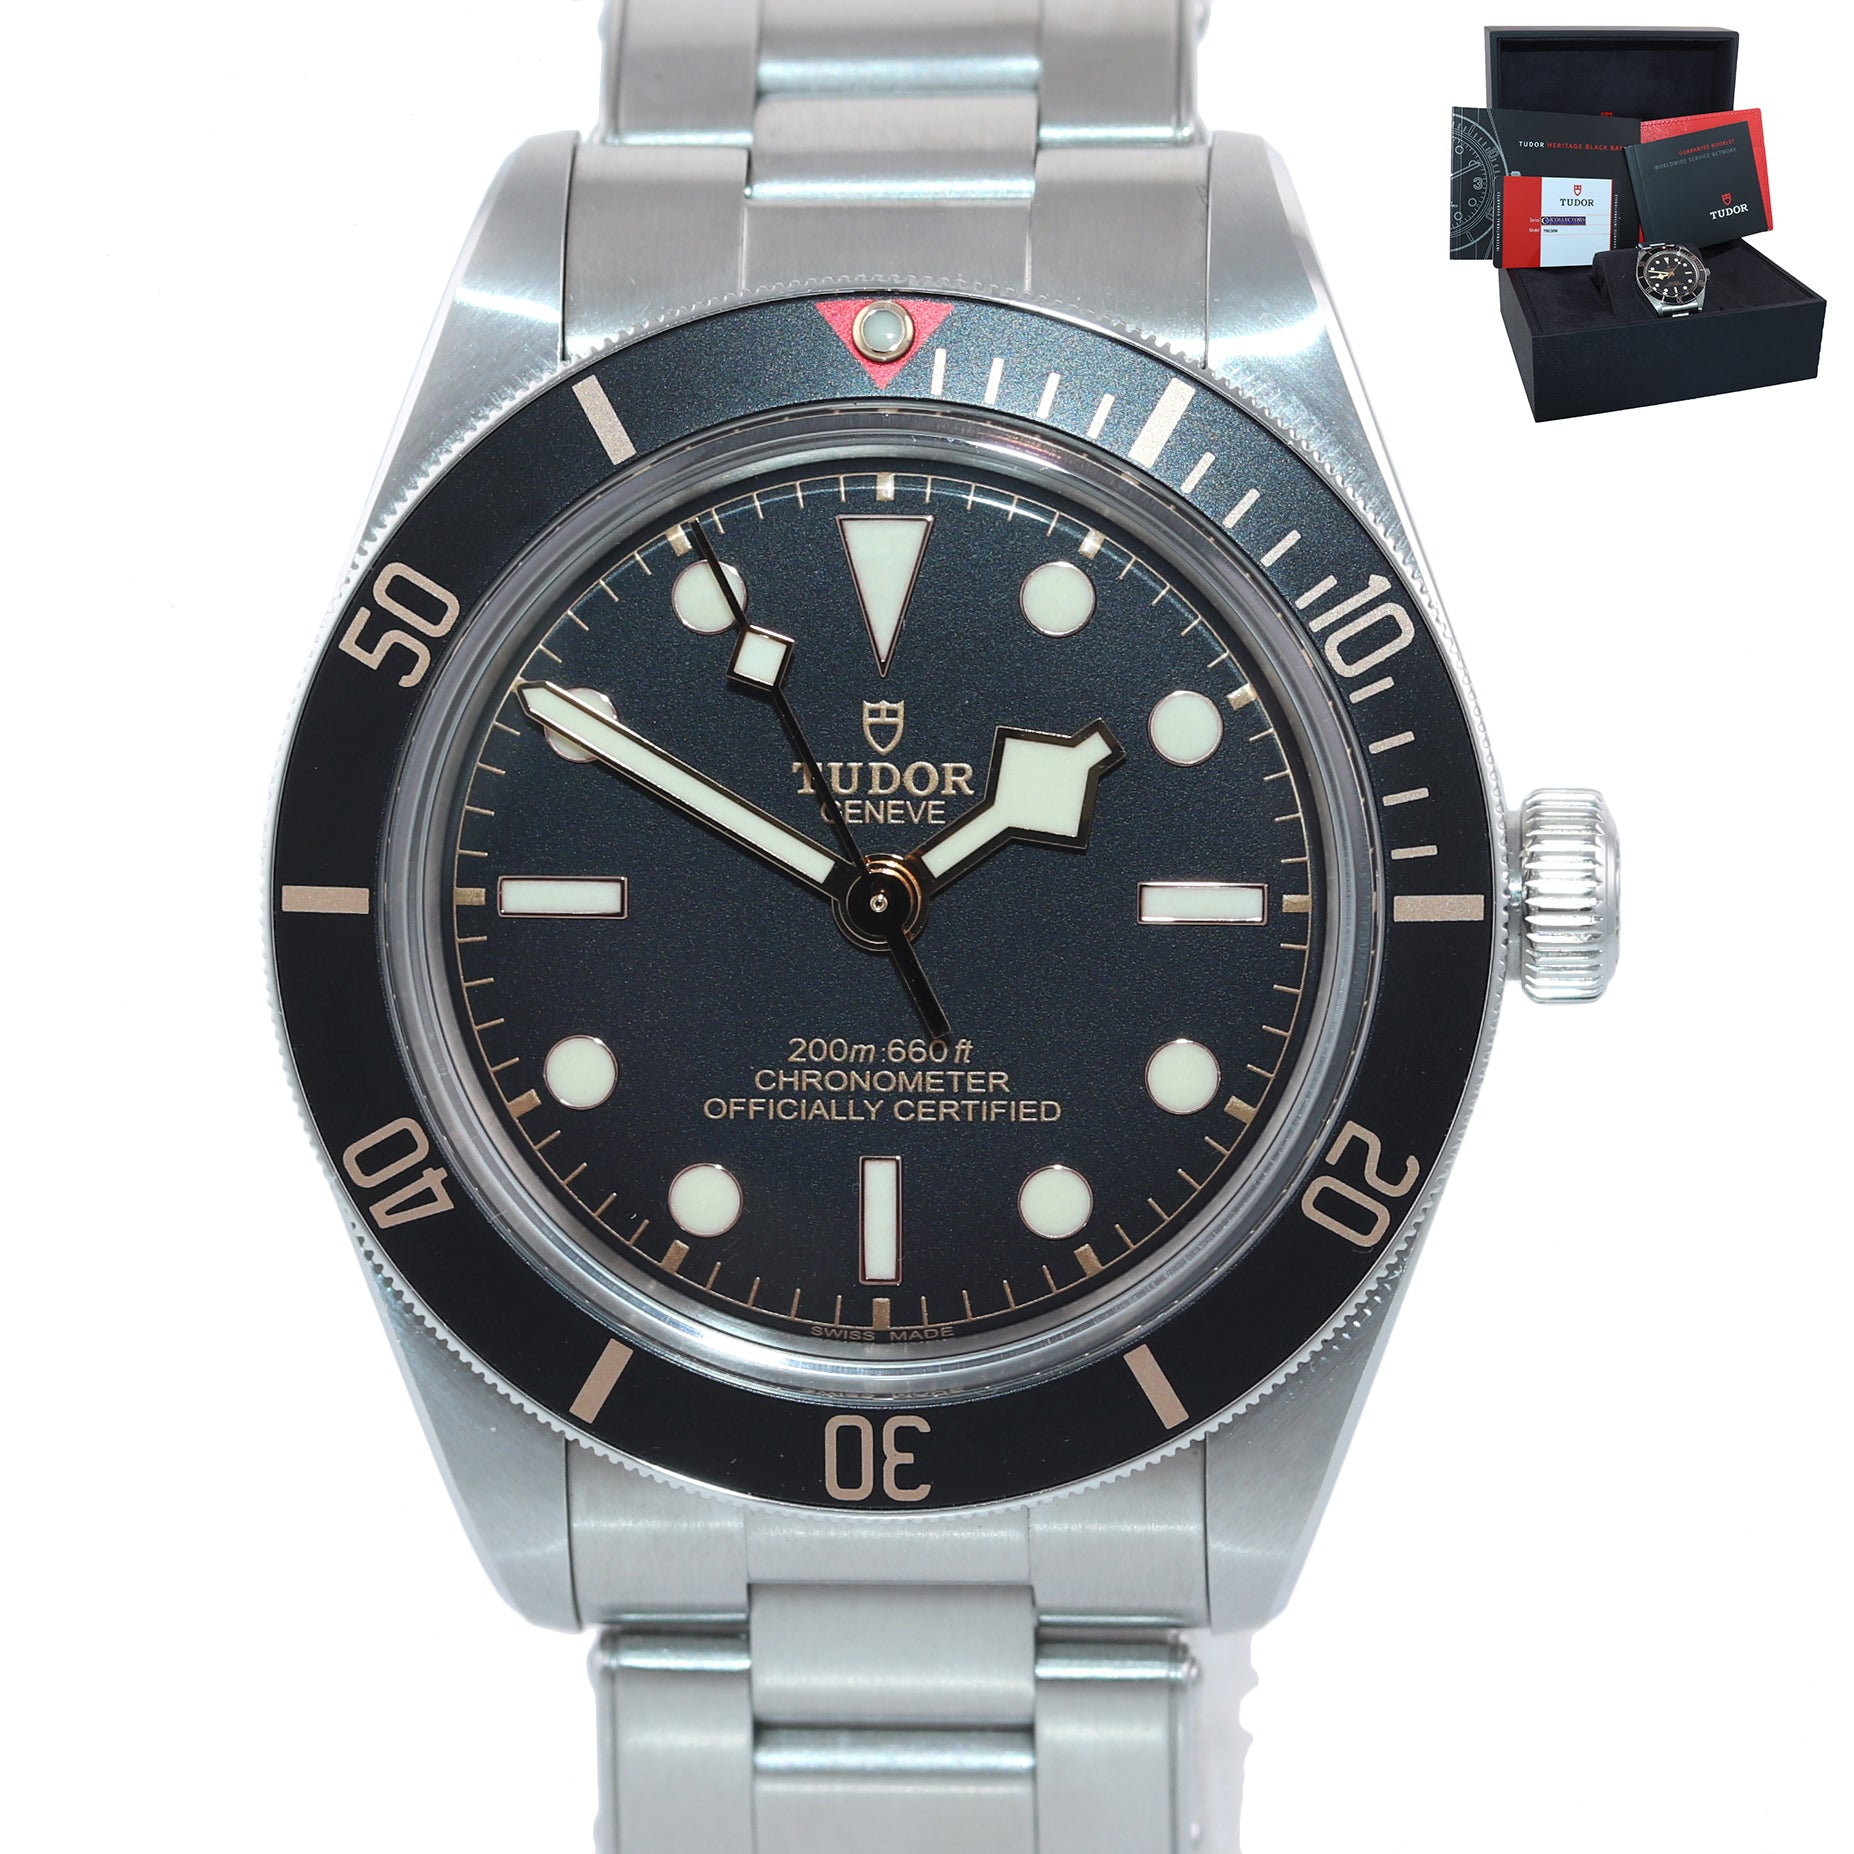 MINT 2019 Papers Tudor Black Bay Fifty-Eight 58 39mm Steel Watch 79030N Box